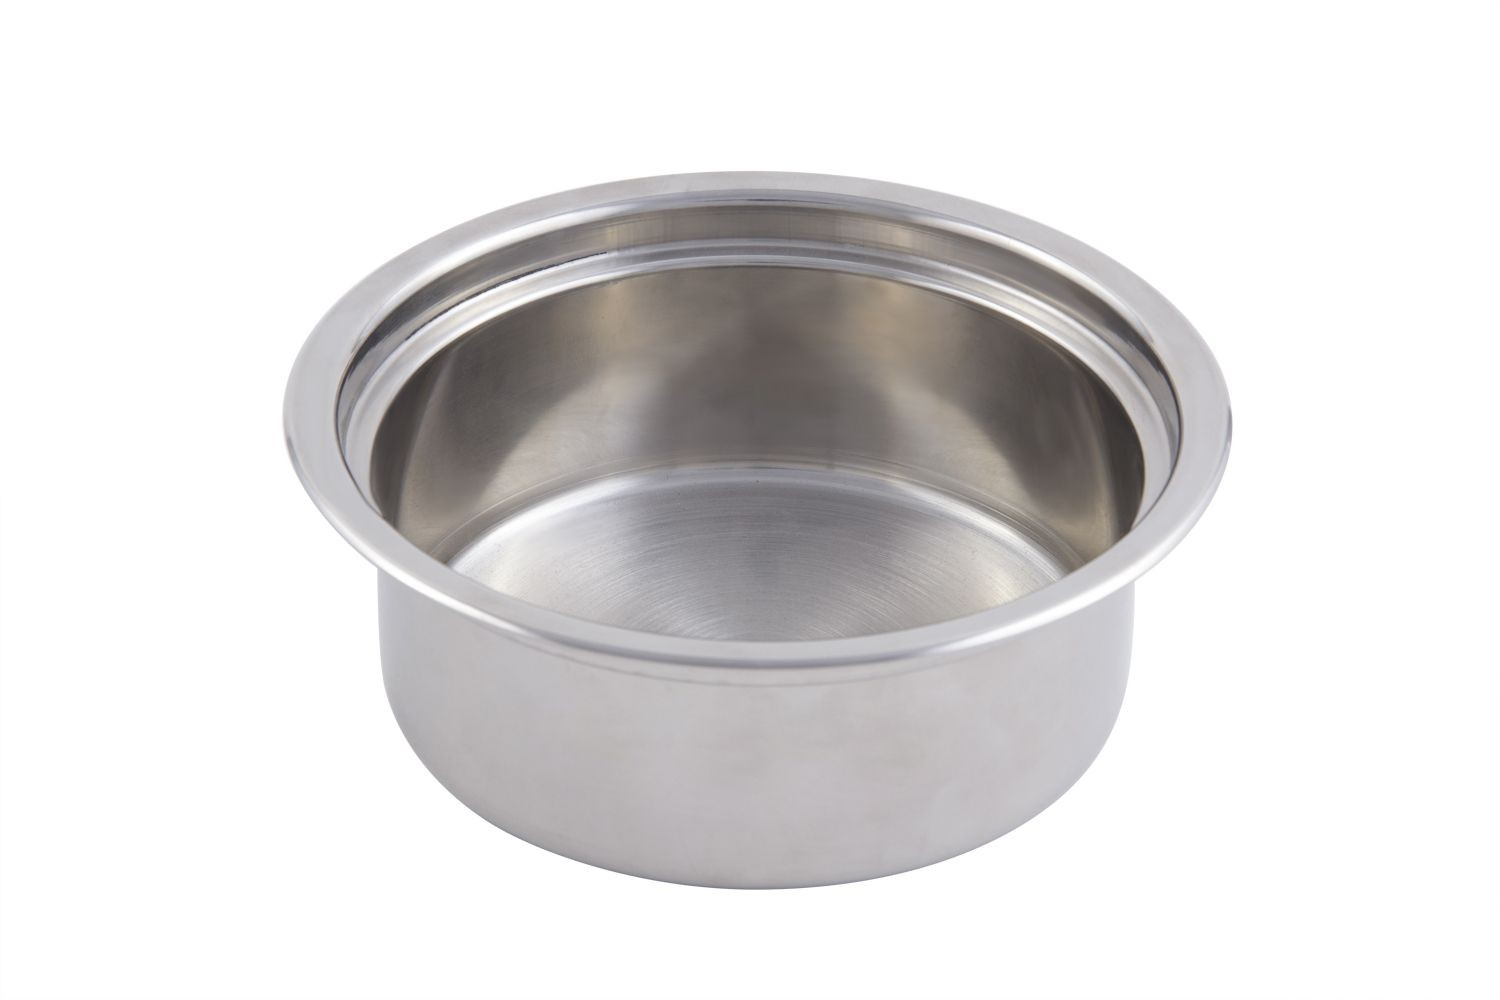 Bon Chef 60299i Insert Pan for Country French Pot, 1 Qt. 6 oz.